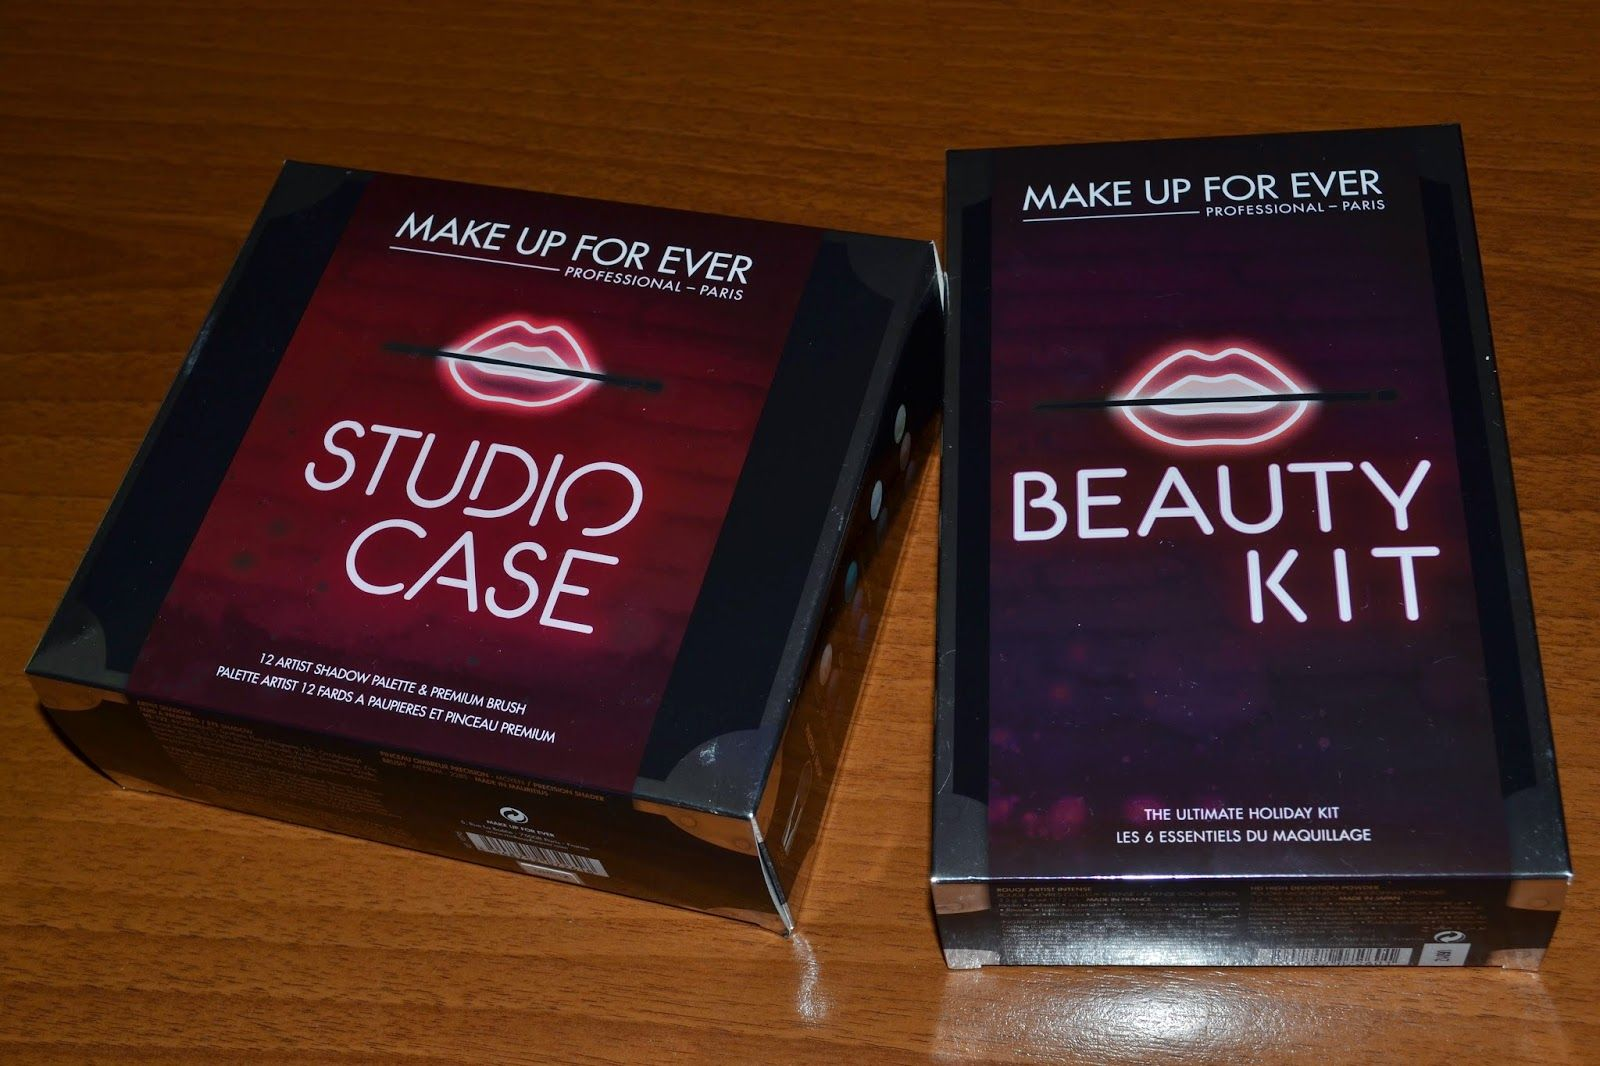 Gennymakeup: STUDIO CASE & BEAUTY KIT MAKE UP FOR EVER